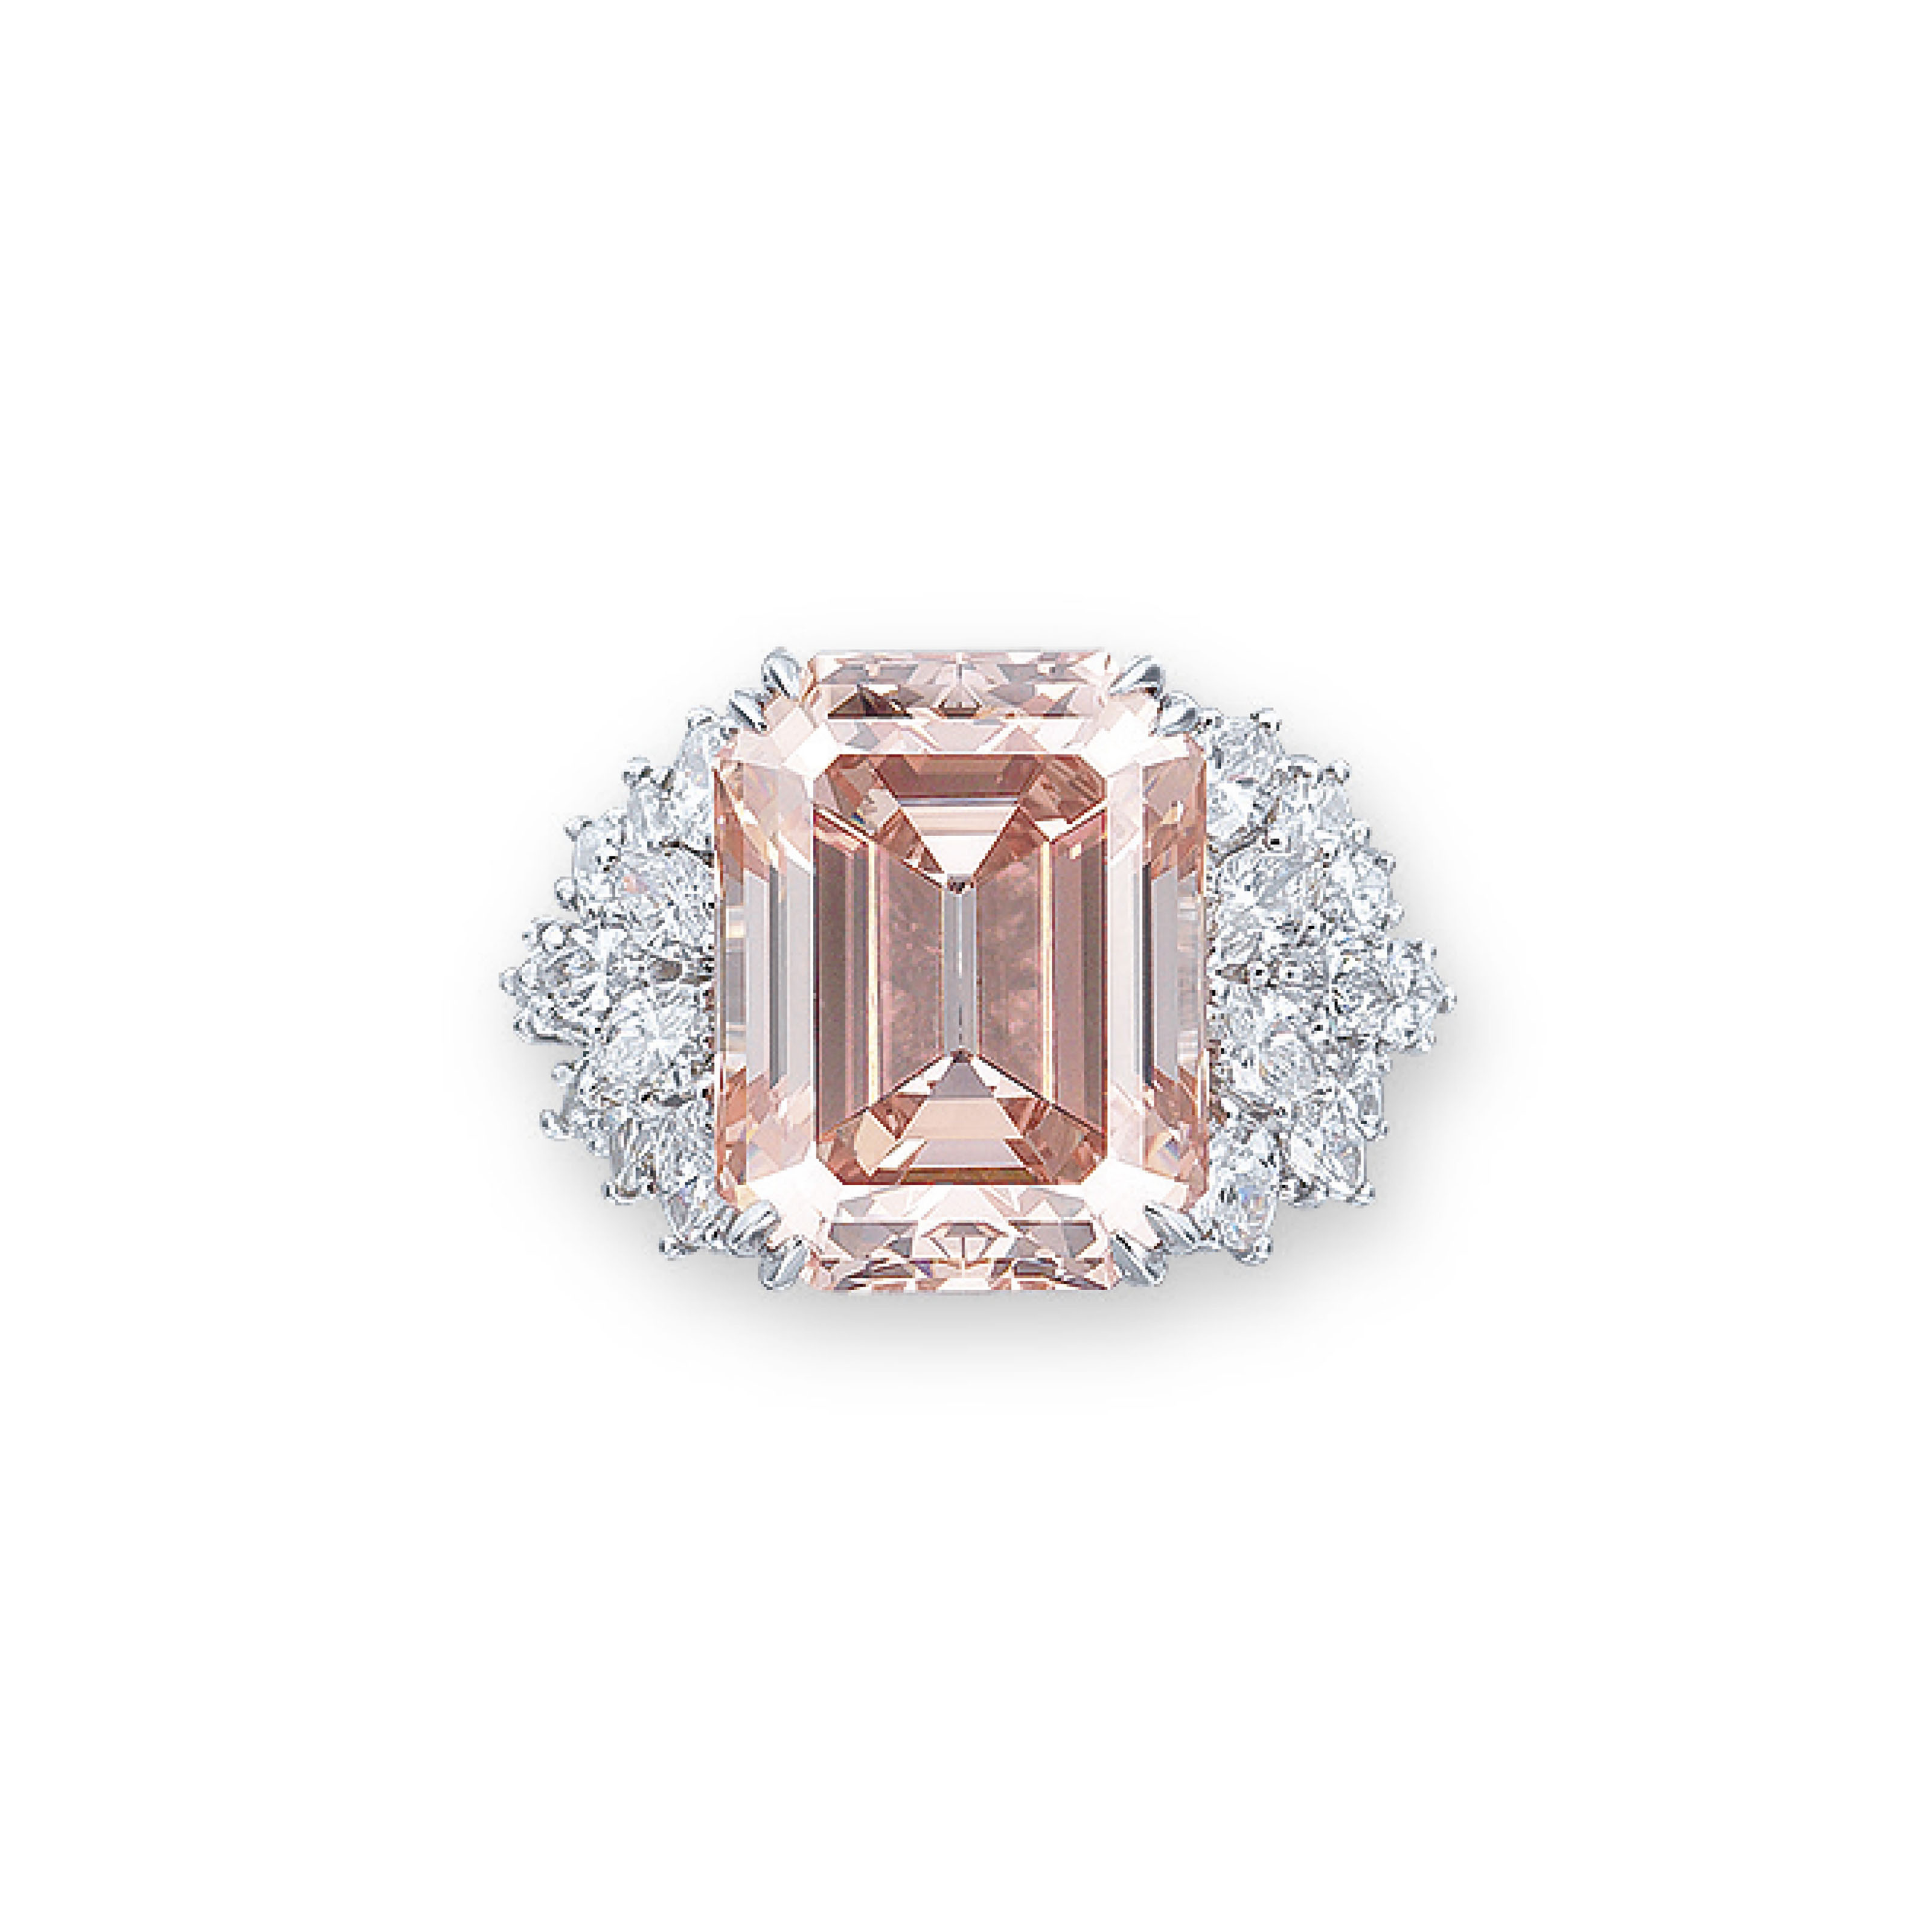 A RARE COLOURED DIAMOND AND DIAMOND RING, BY HARRY WINSTON